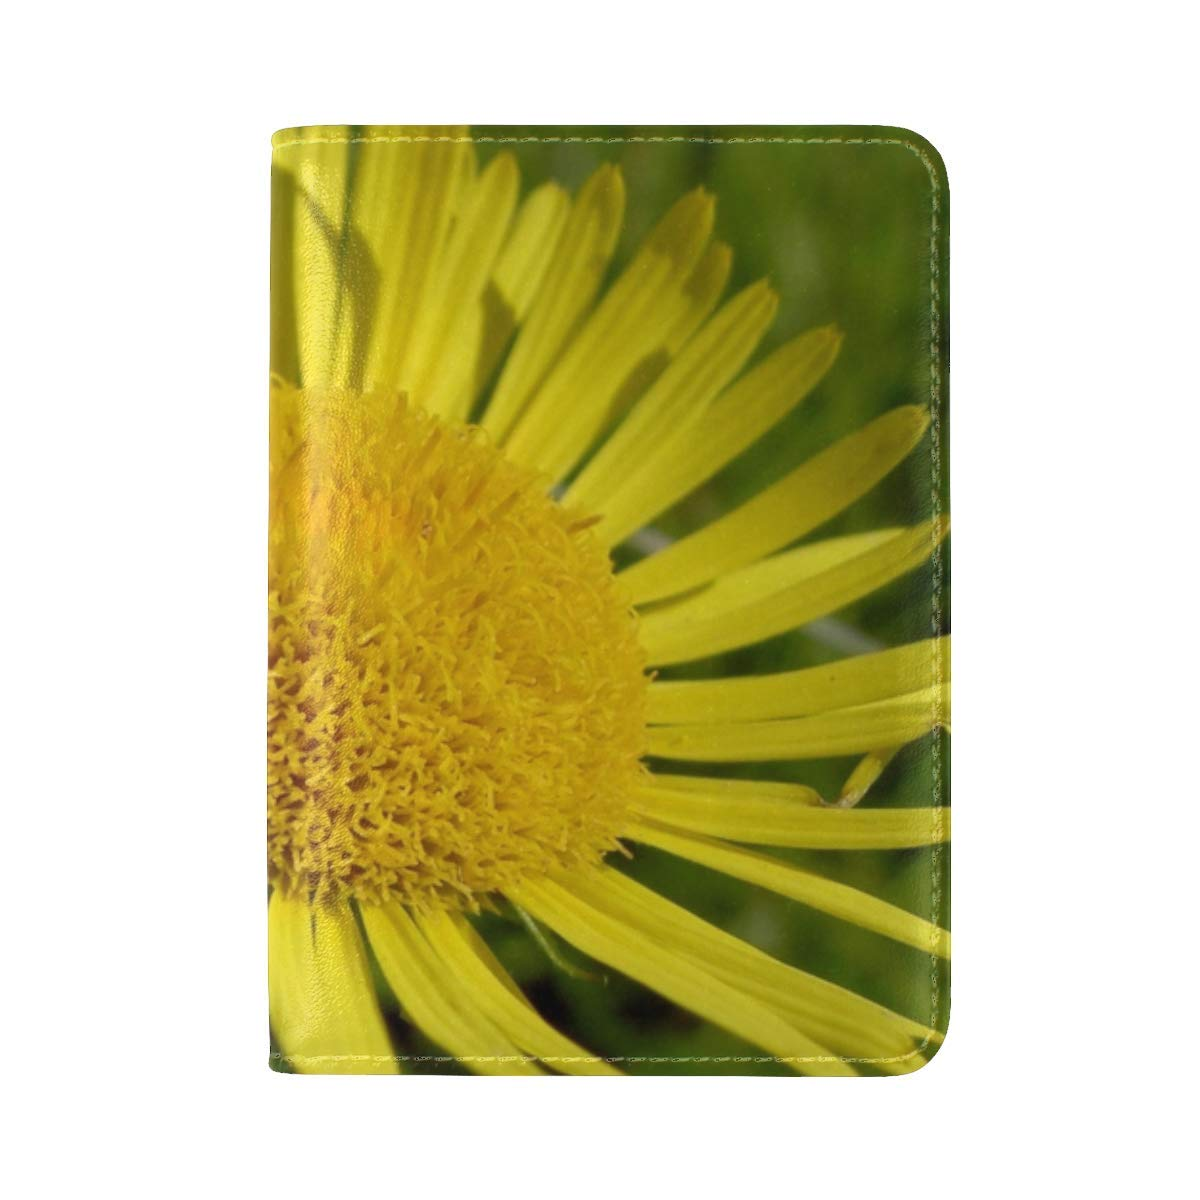 Petals Plant Flower Yellow Leather Passport Holder Cover Case Travel One Pocket